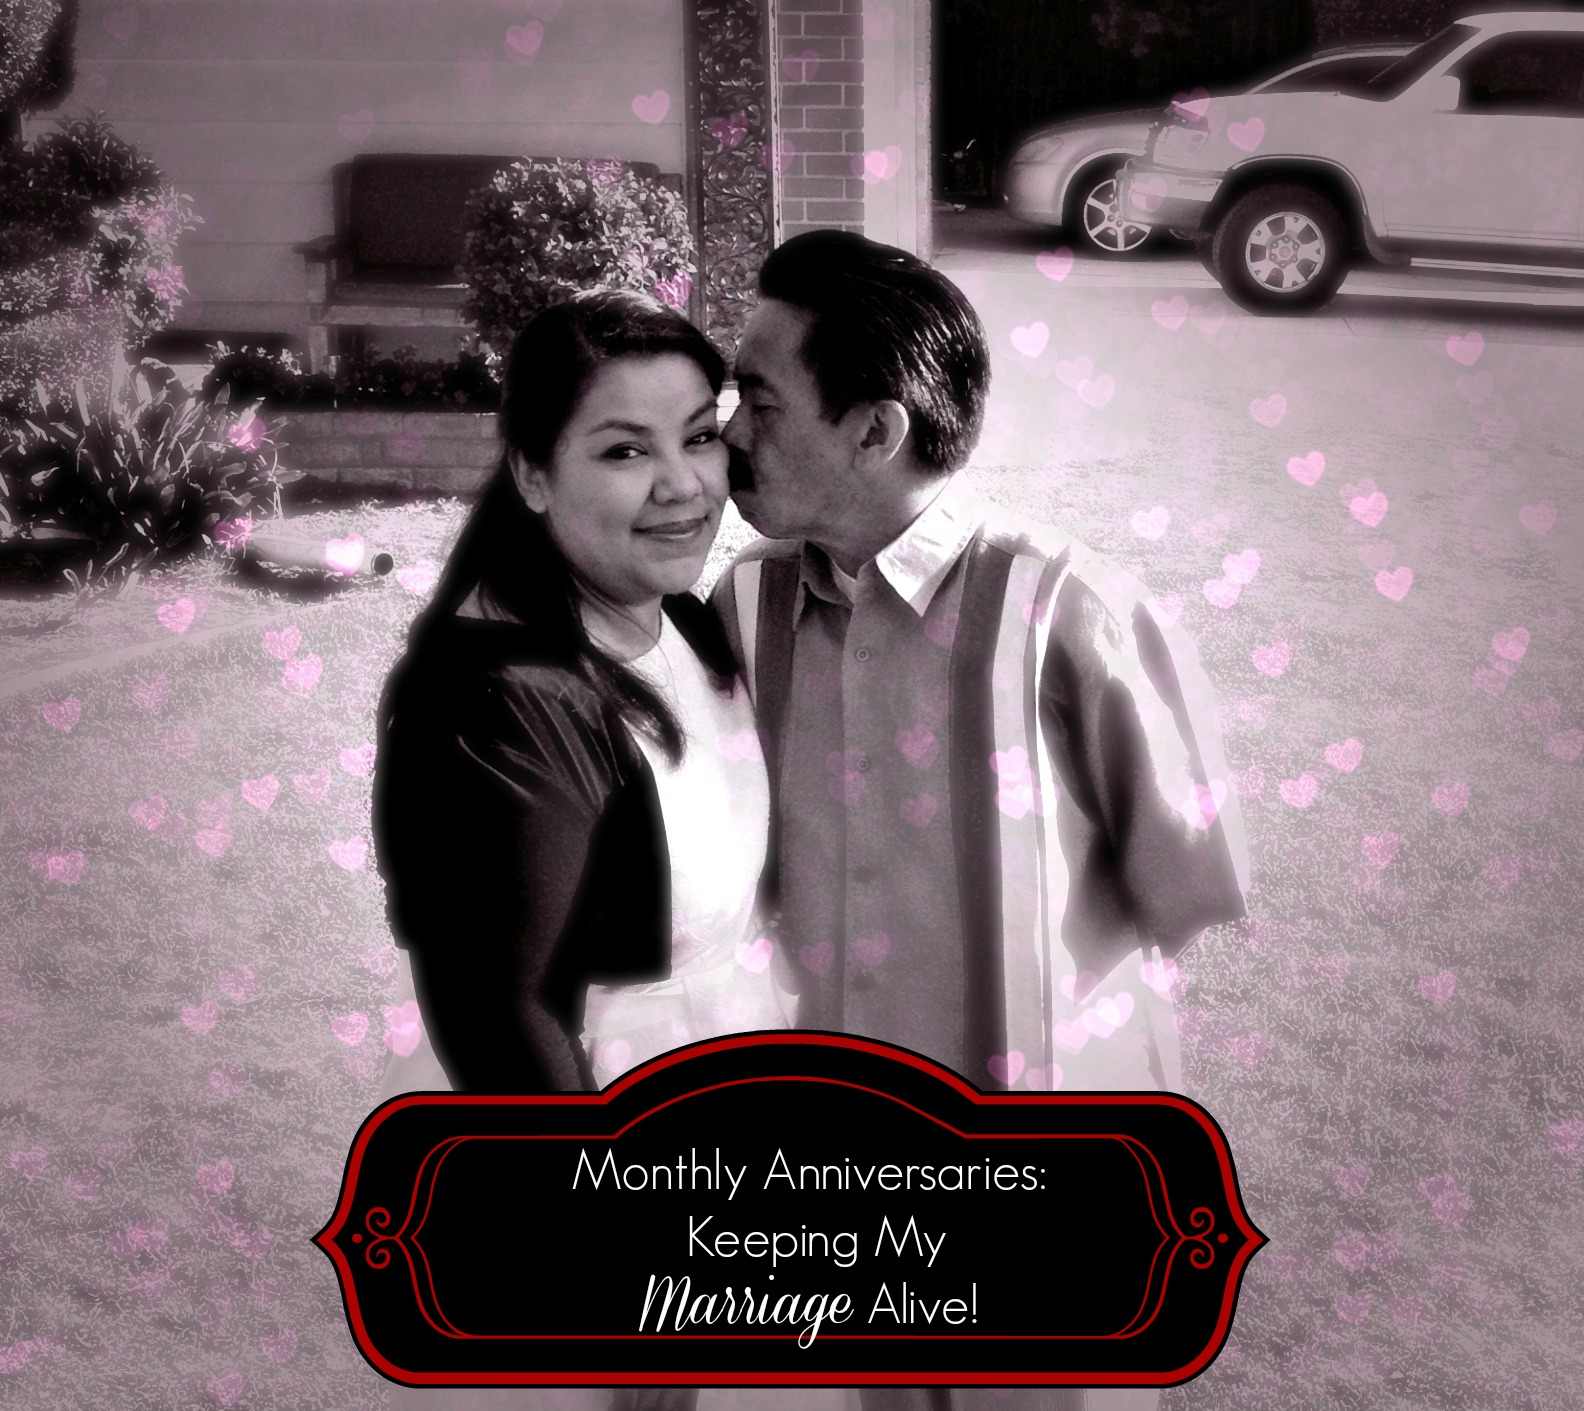 monthly-anniversaries-keeping-marriage-alive